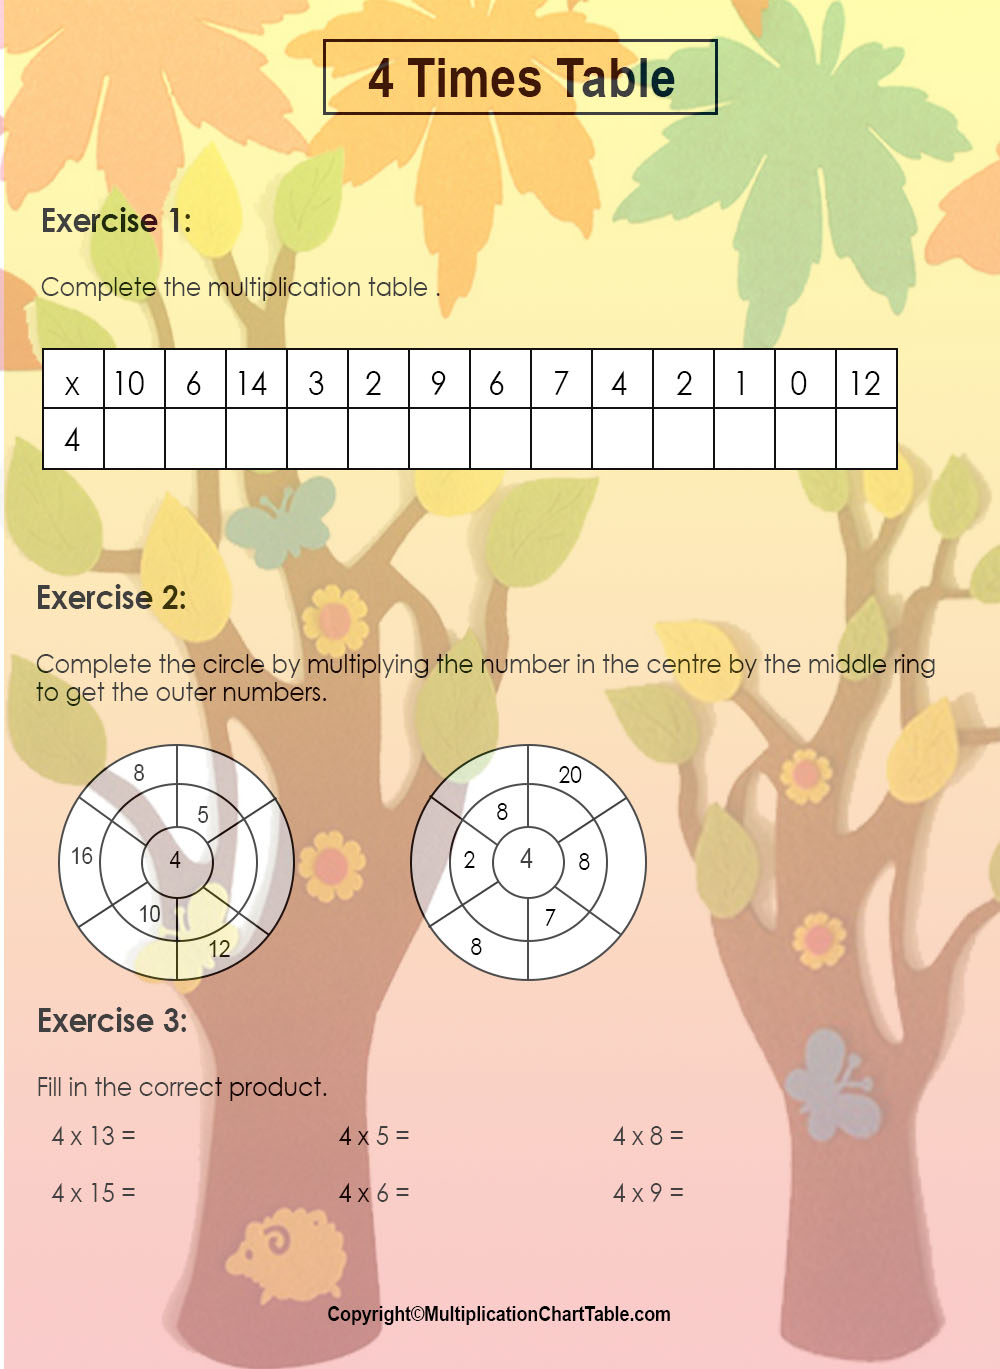 4 times table worksheets